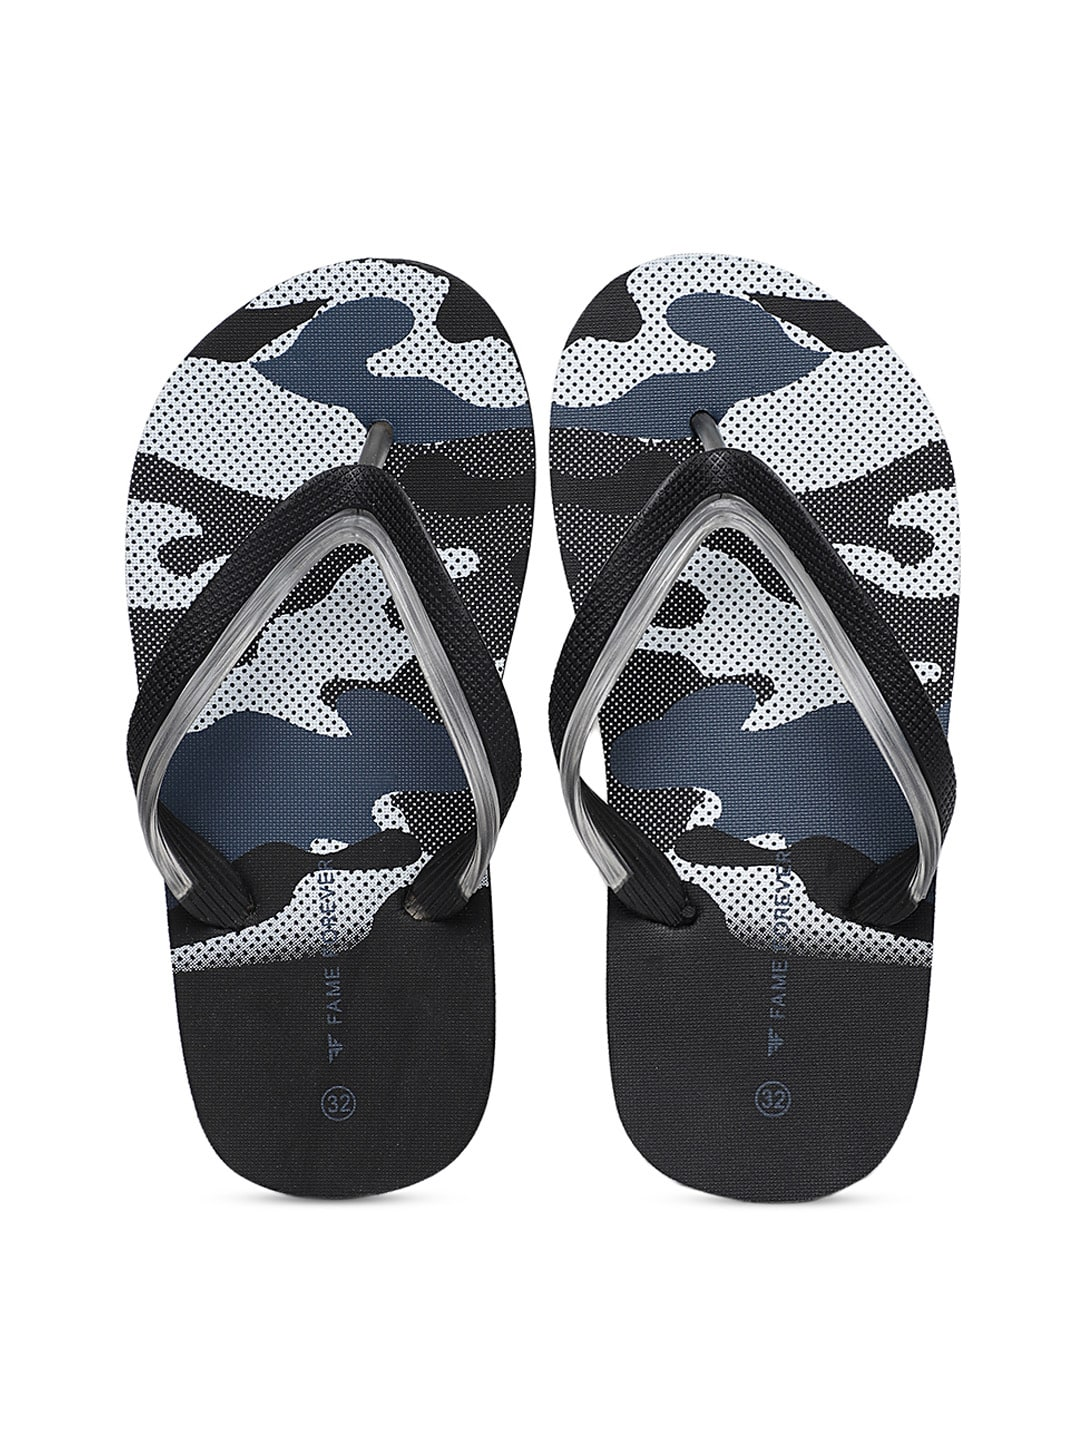 4fbdd5114 Boys Girls Flip Flops Capris - Buy Boys Girls Flip Flops Capris online in  India